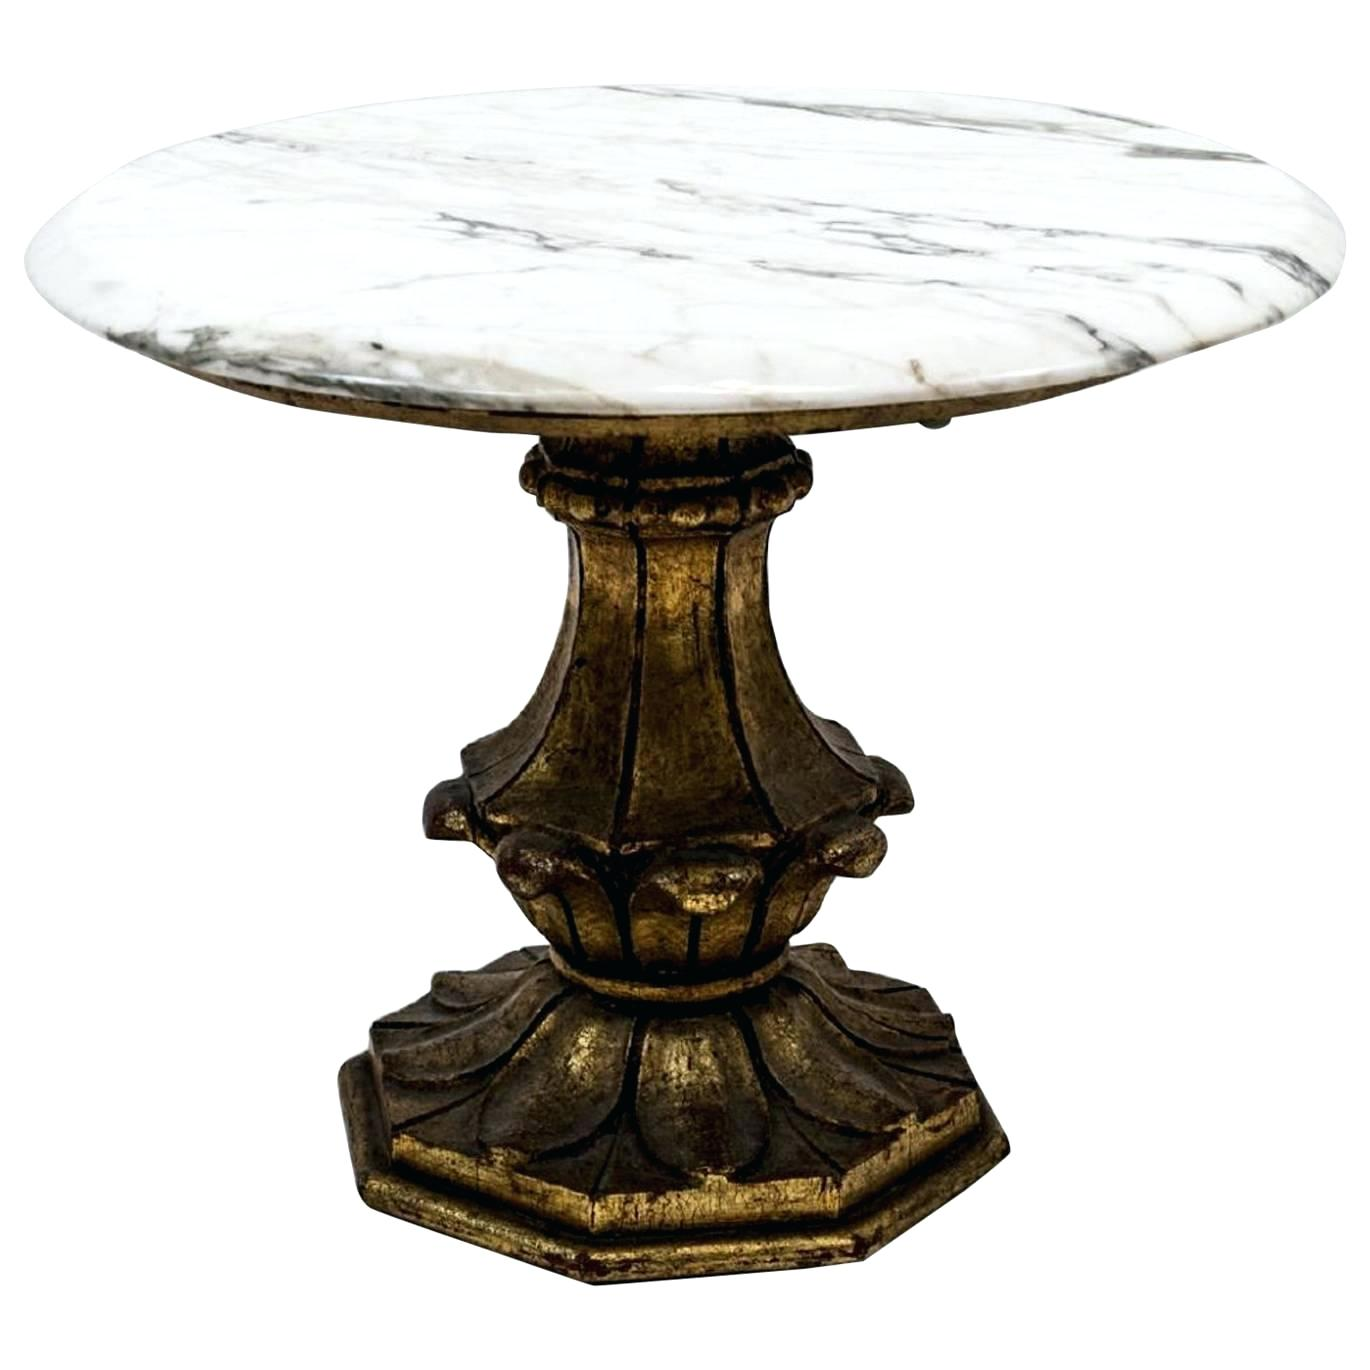 marble top accent table killian round hepsy vintage with and base for antique granite end all hampton bay furniture covers black glass coffee small gold white counter height set